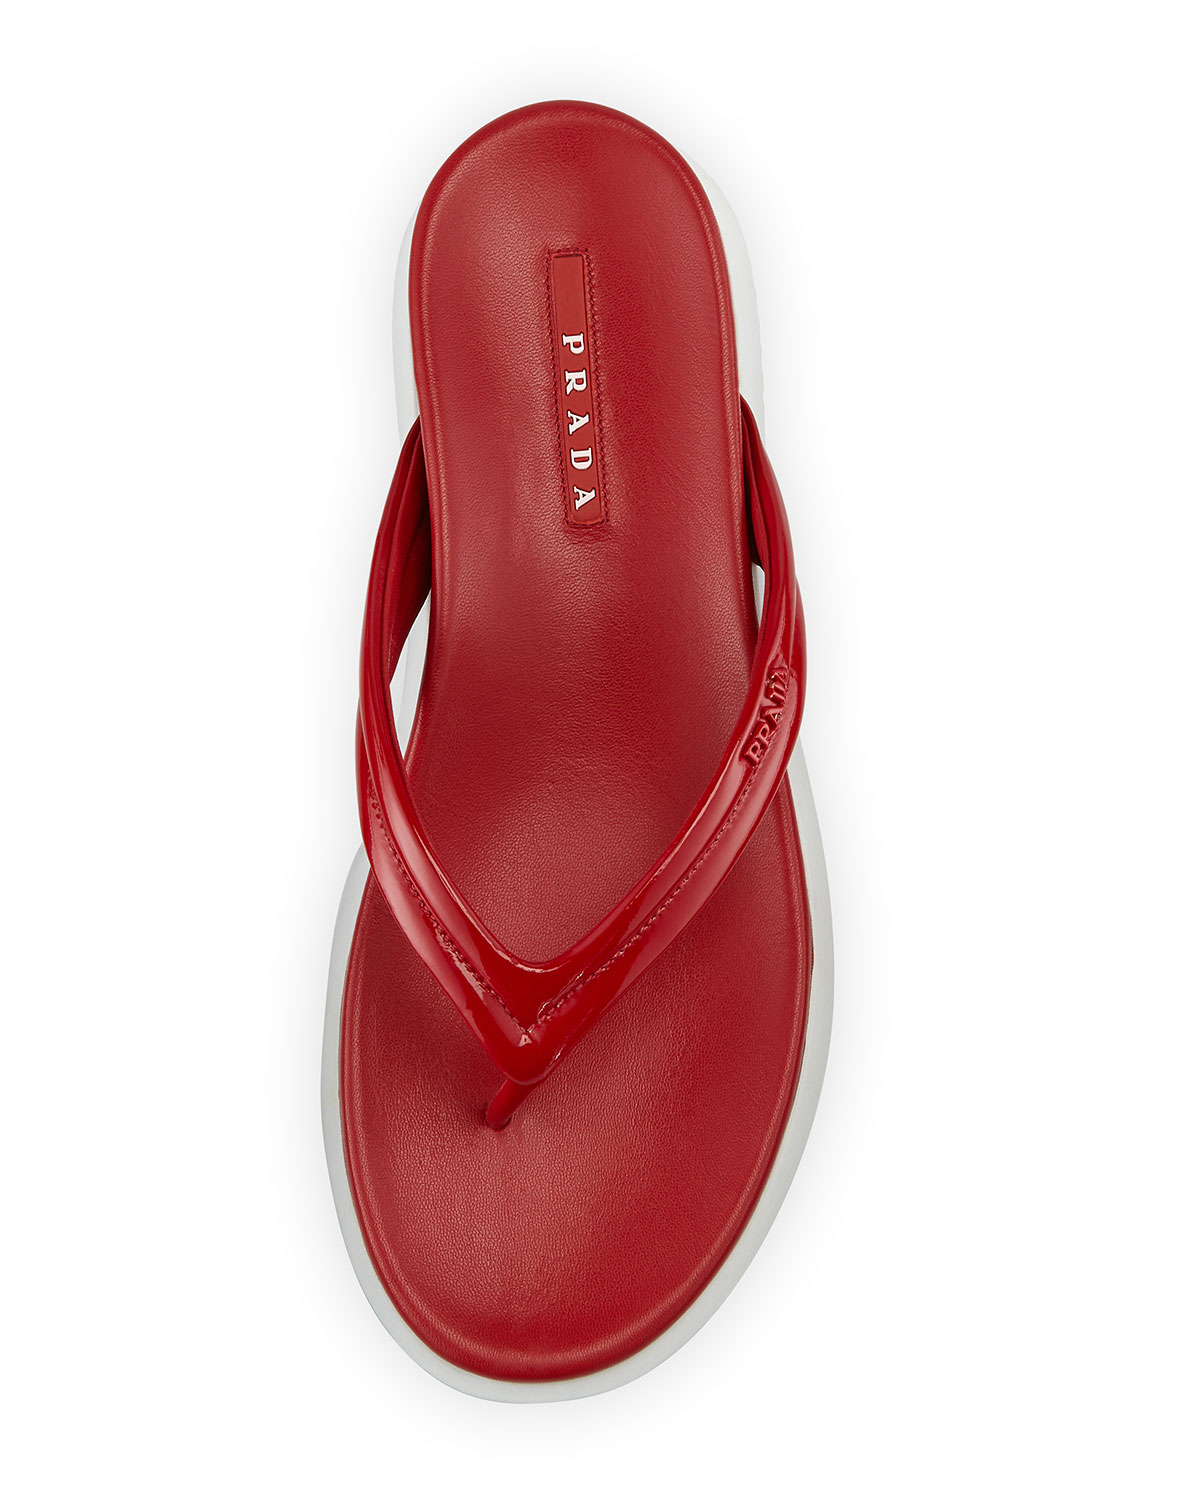 1368ec58d Lyst - Prada Patent Leather Thong Sandal in Red